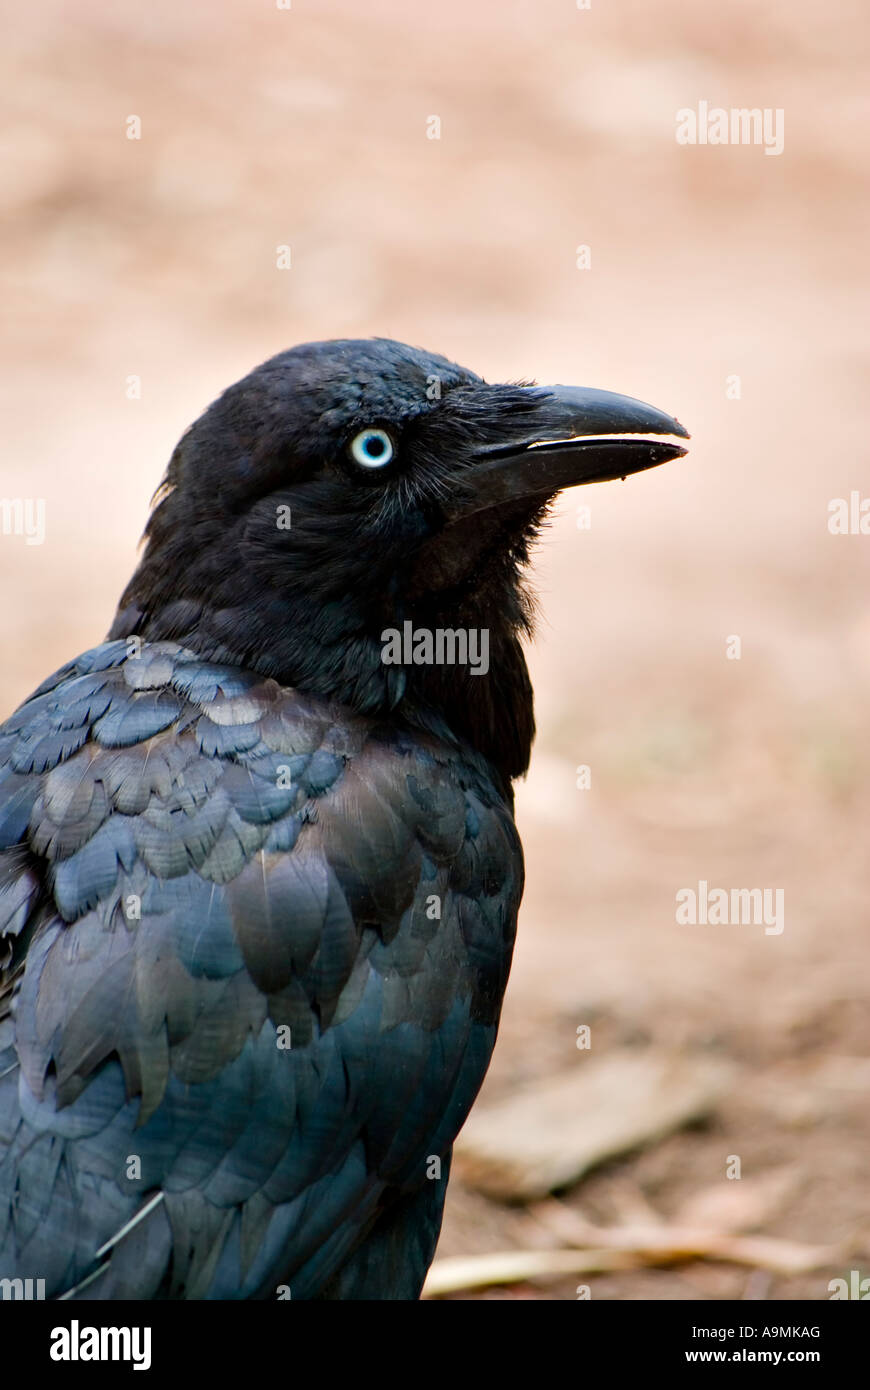 a crow australian raven looks back over its shoulder to see what is behind it - Stock Image